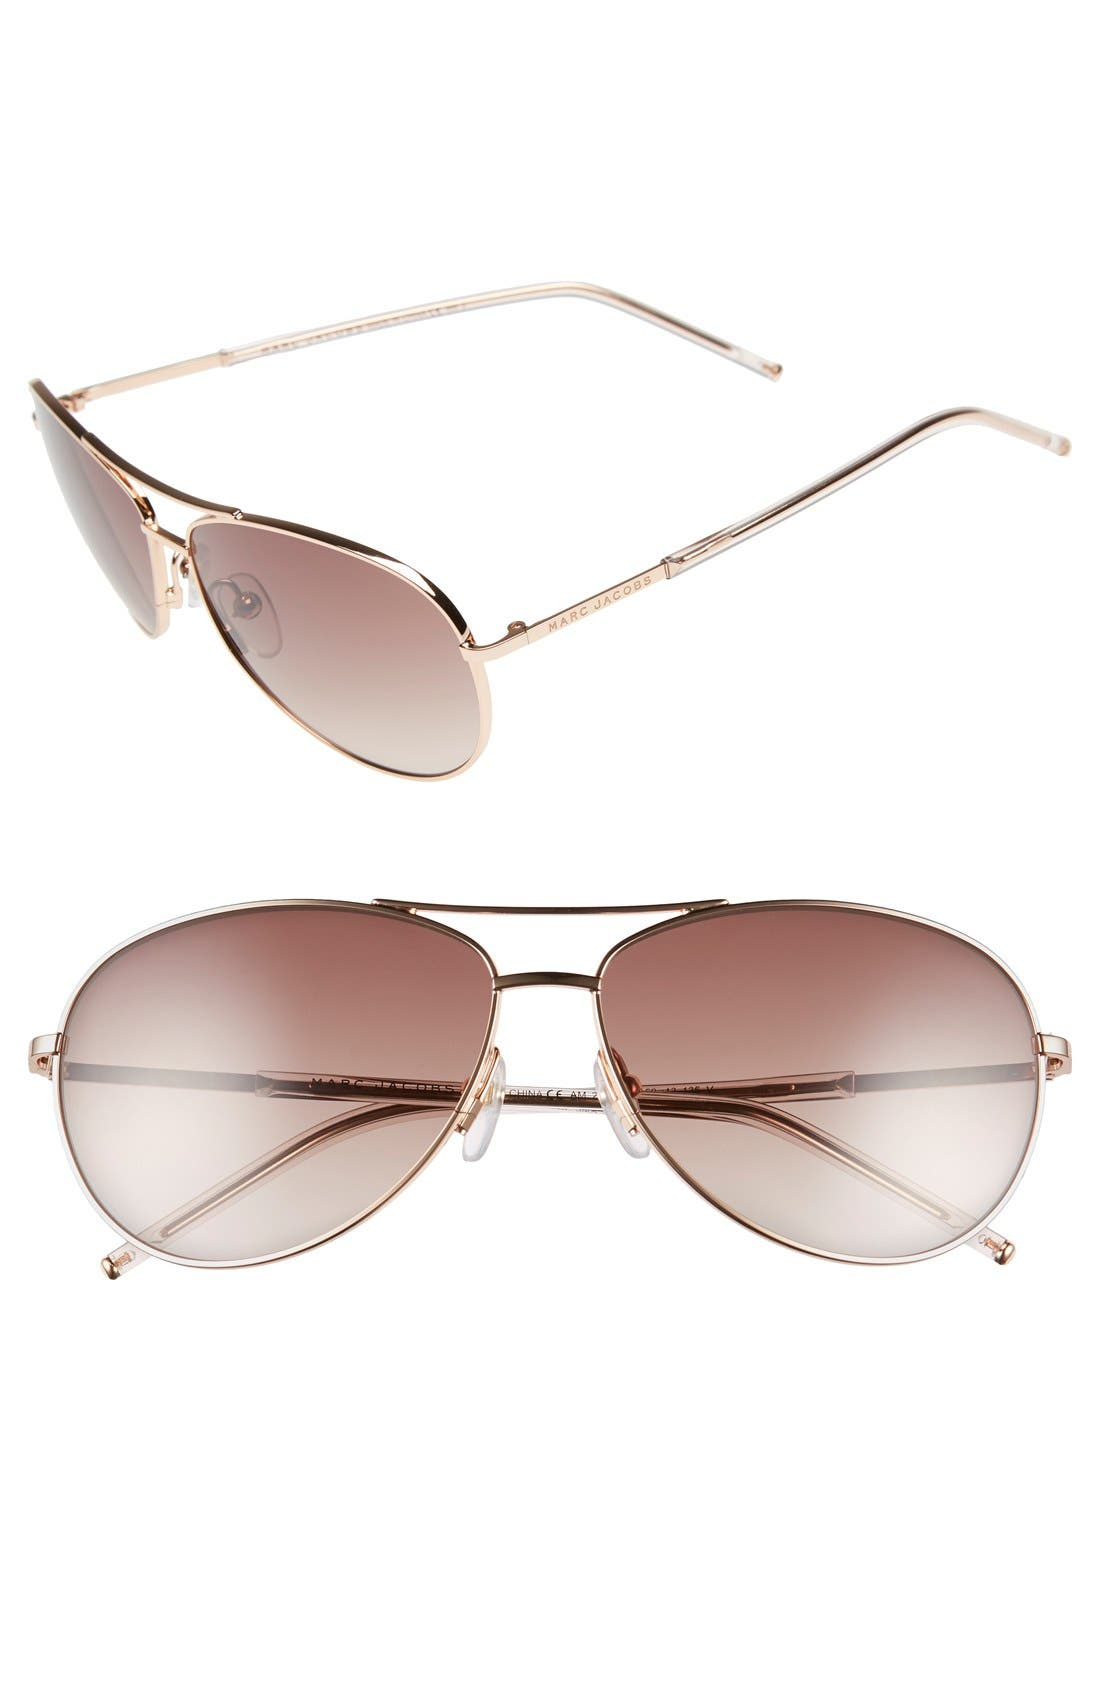 59mm Aviator Sunglasses,                         Main,                         color, GOLD COPPER